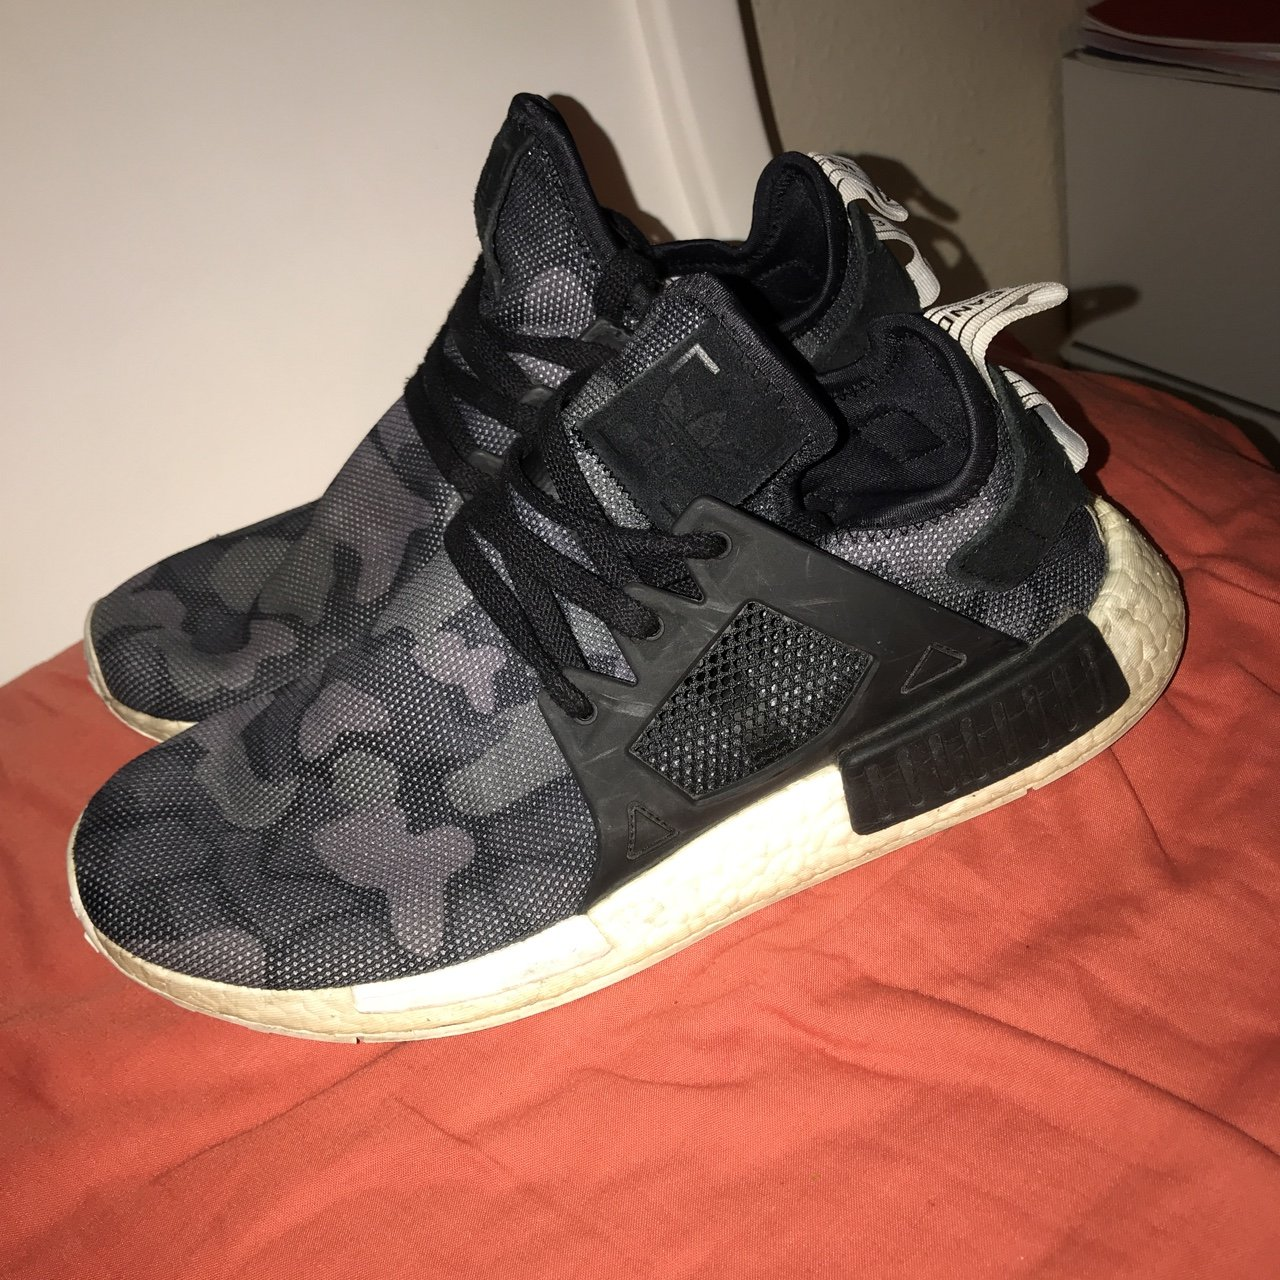 a70eb9258 NMD XR1 UK 9.5 8 10 condition Price negotiable so pm me - Depop